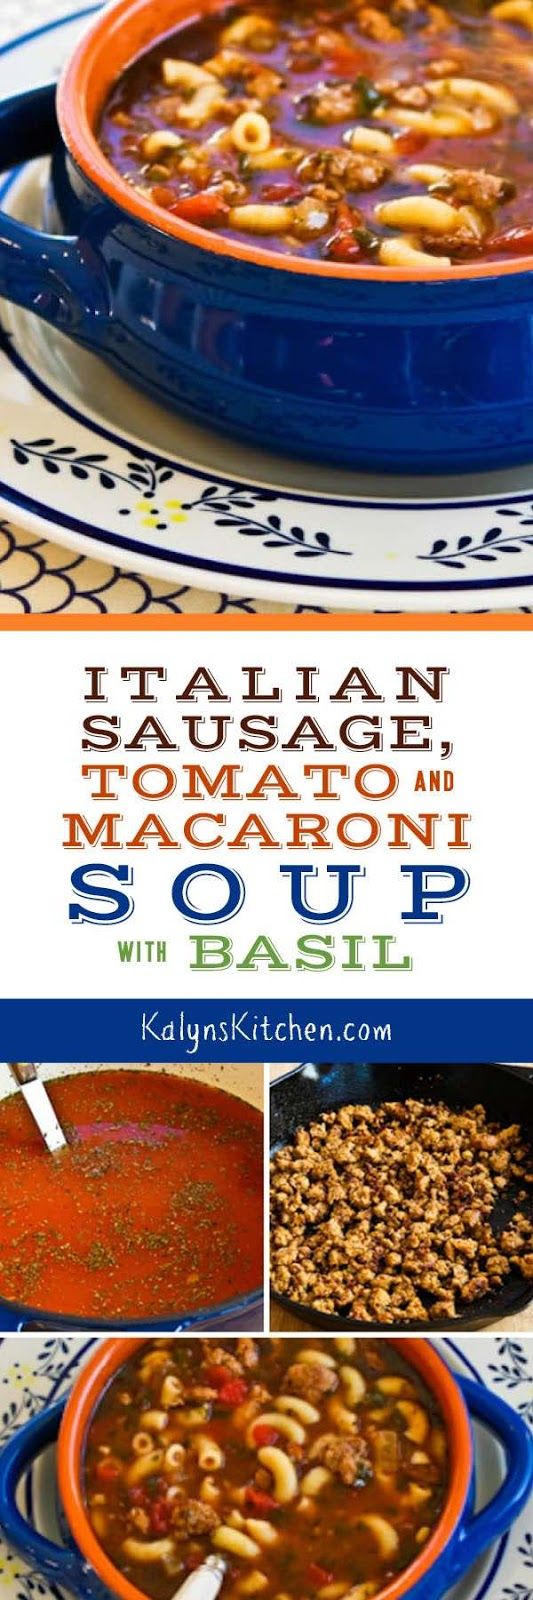 Easy Italian Sausage, Tomato, and Macaroni Soup with Basil can be on the table in about 40 minutes, and this soup is always a crowd-pleaser! For a low-carb version of this soup, just replace the macaroni with thick zucchini noodles. [found on KalynsKitchen.com]